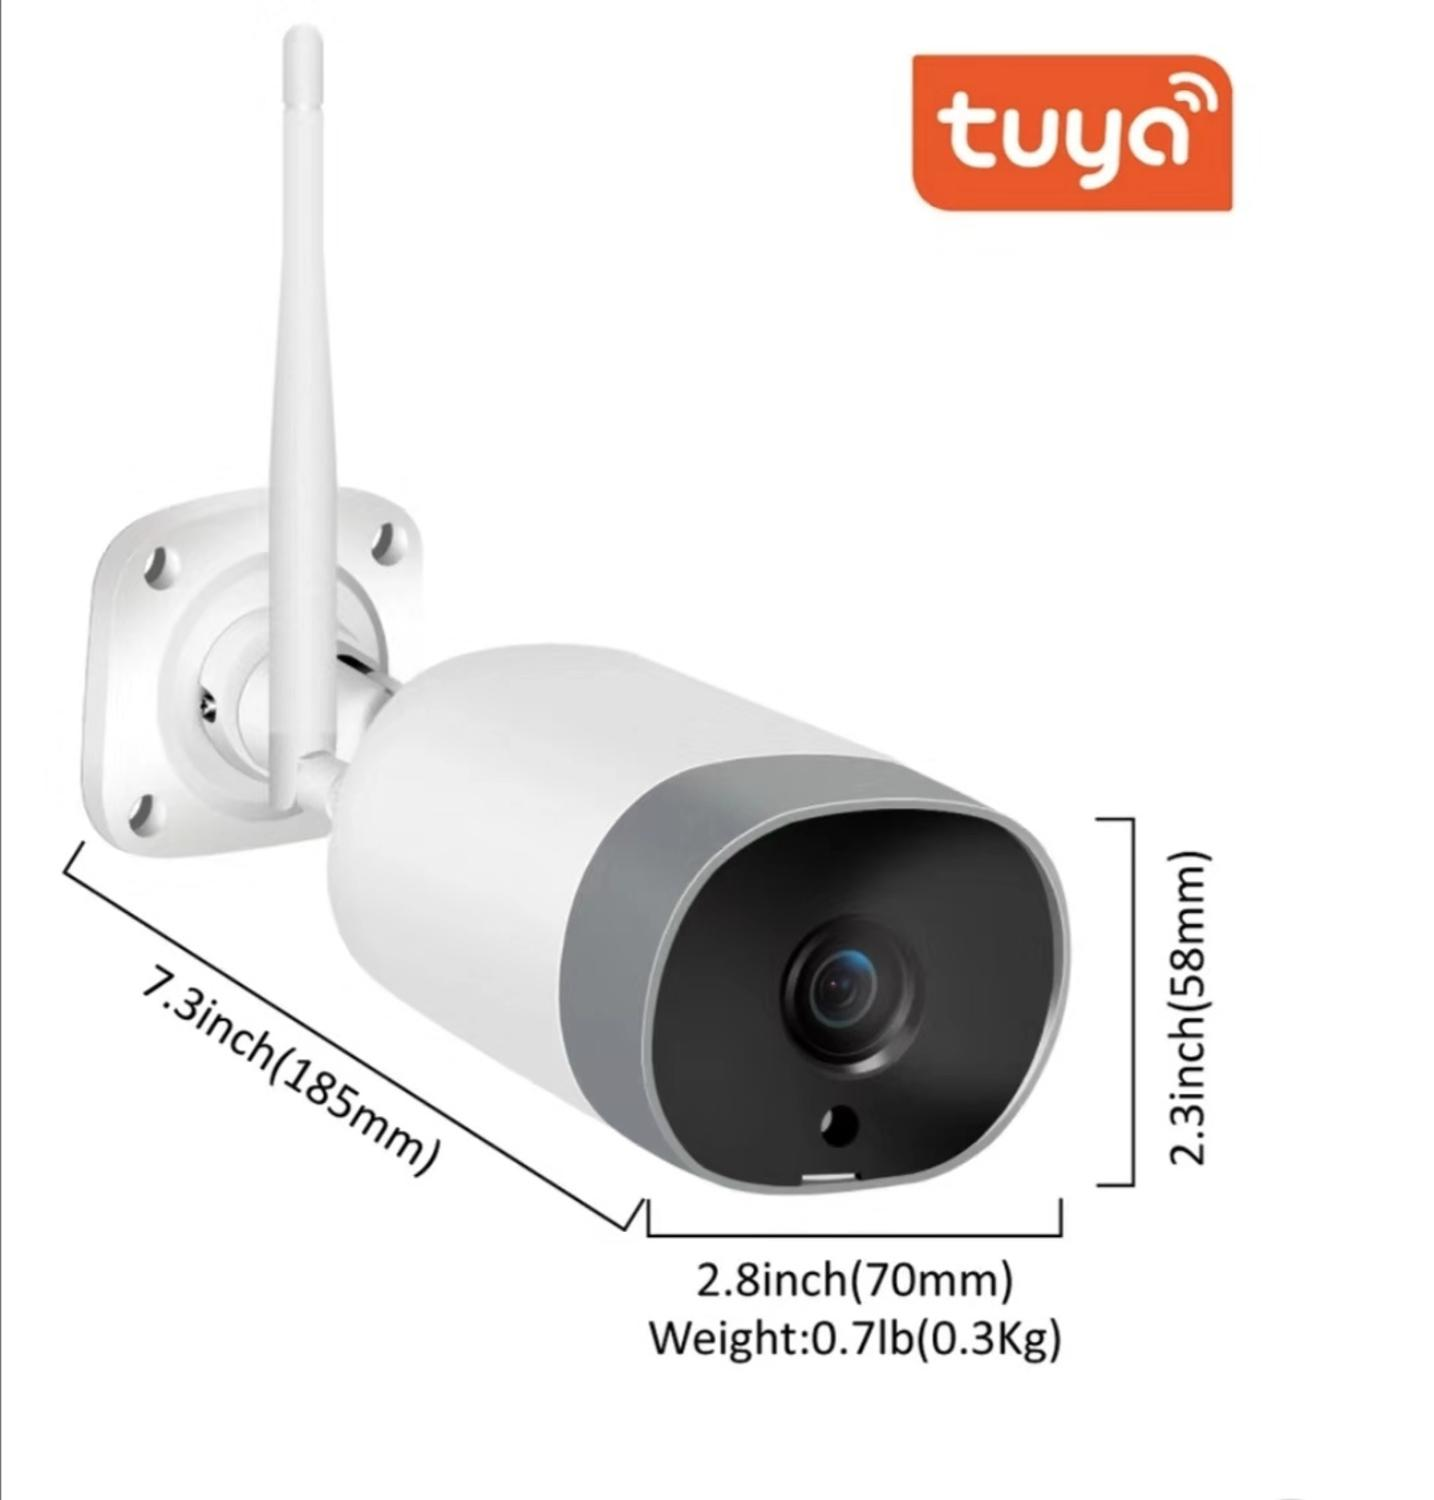 Tuya Smart Life Wireless Bullet Wifi Outdoor Camera Waterproof IP66 Works With Google Chromecast Smart Display Amazon Echo Show